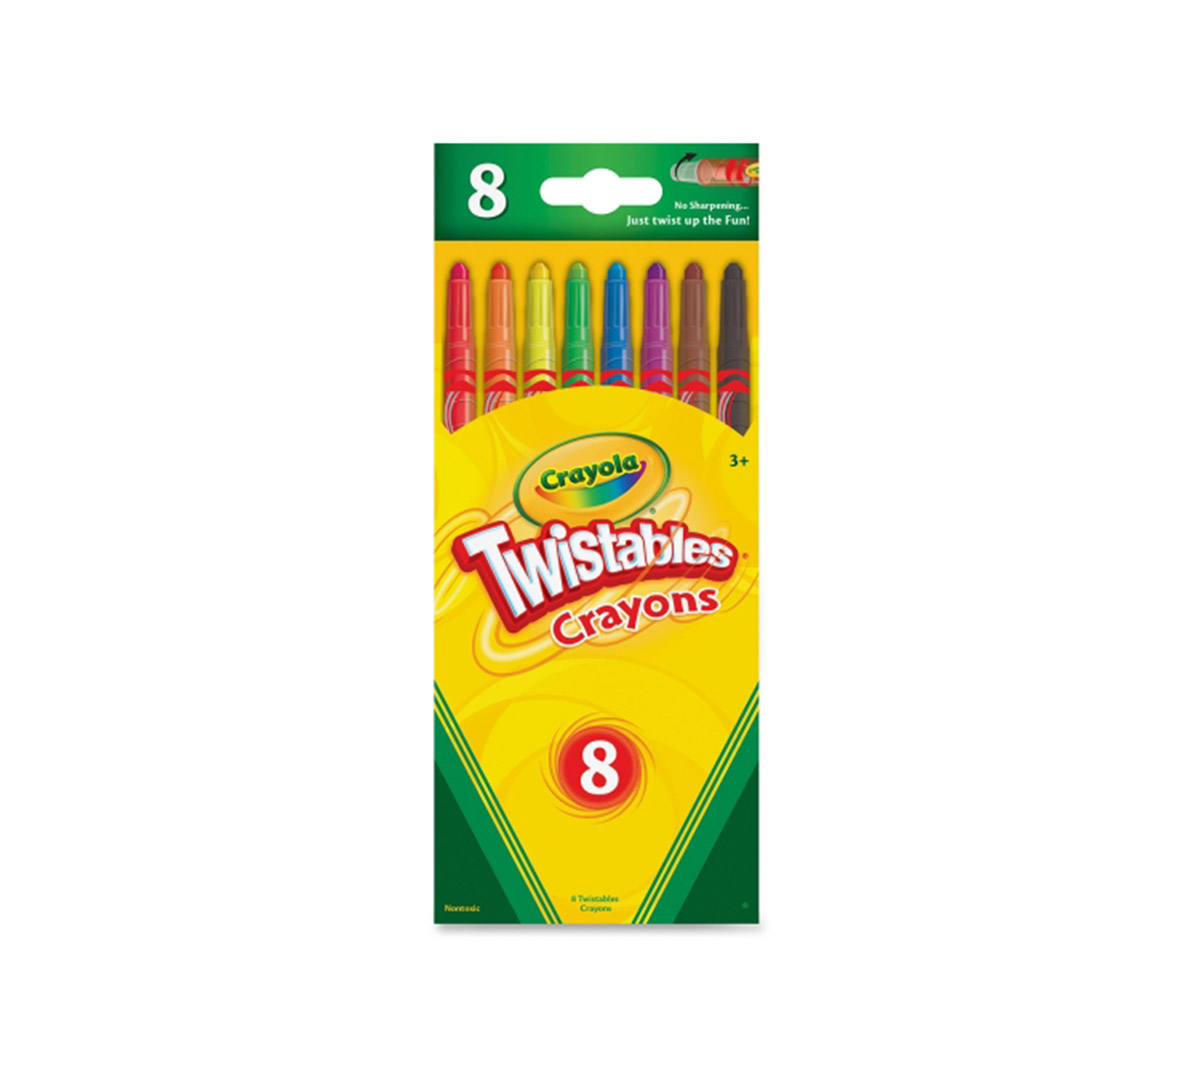 Crayola Twistables Crayons 8ct Coloring Gift For Kids